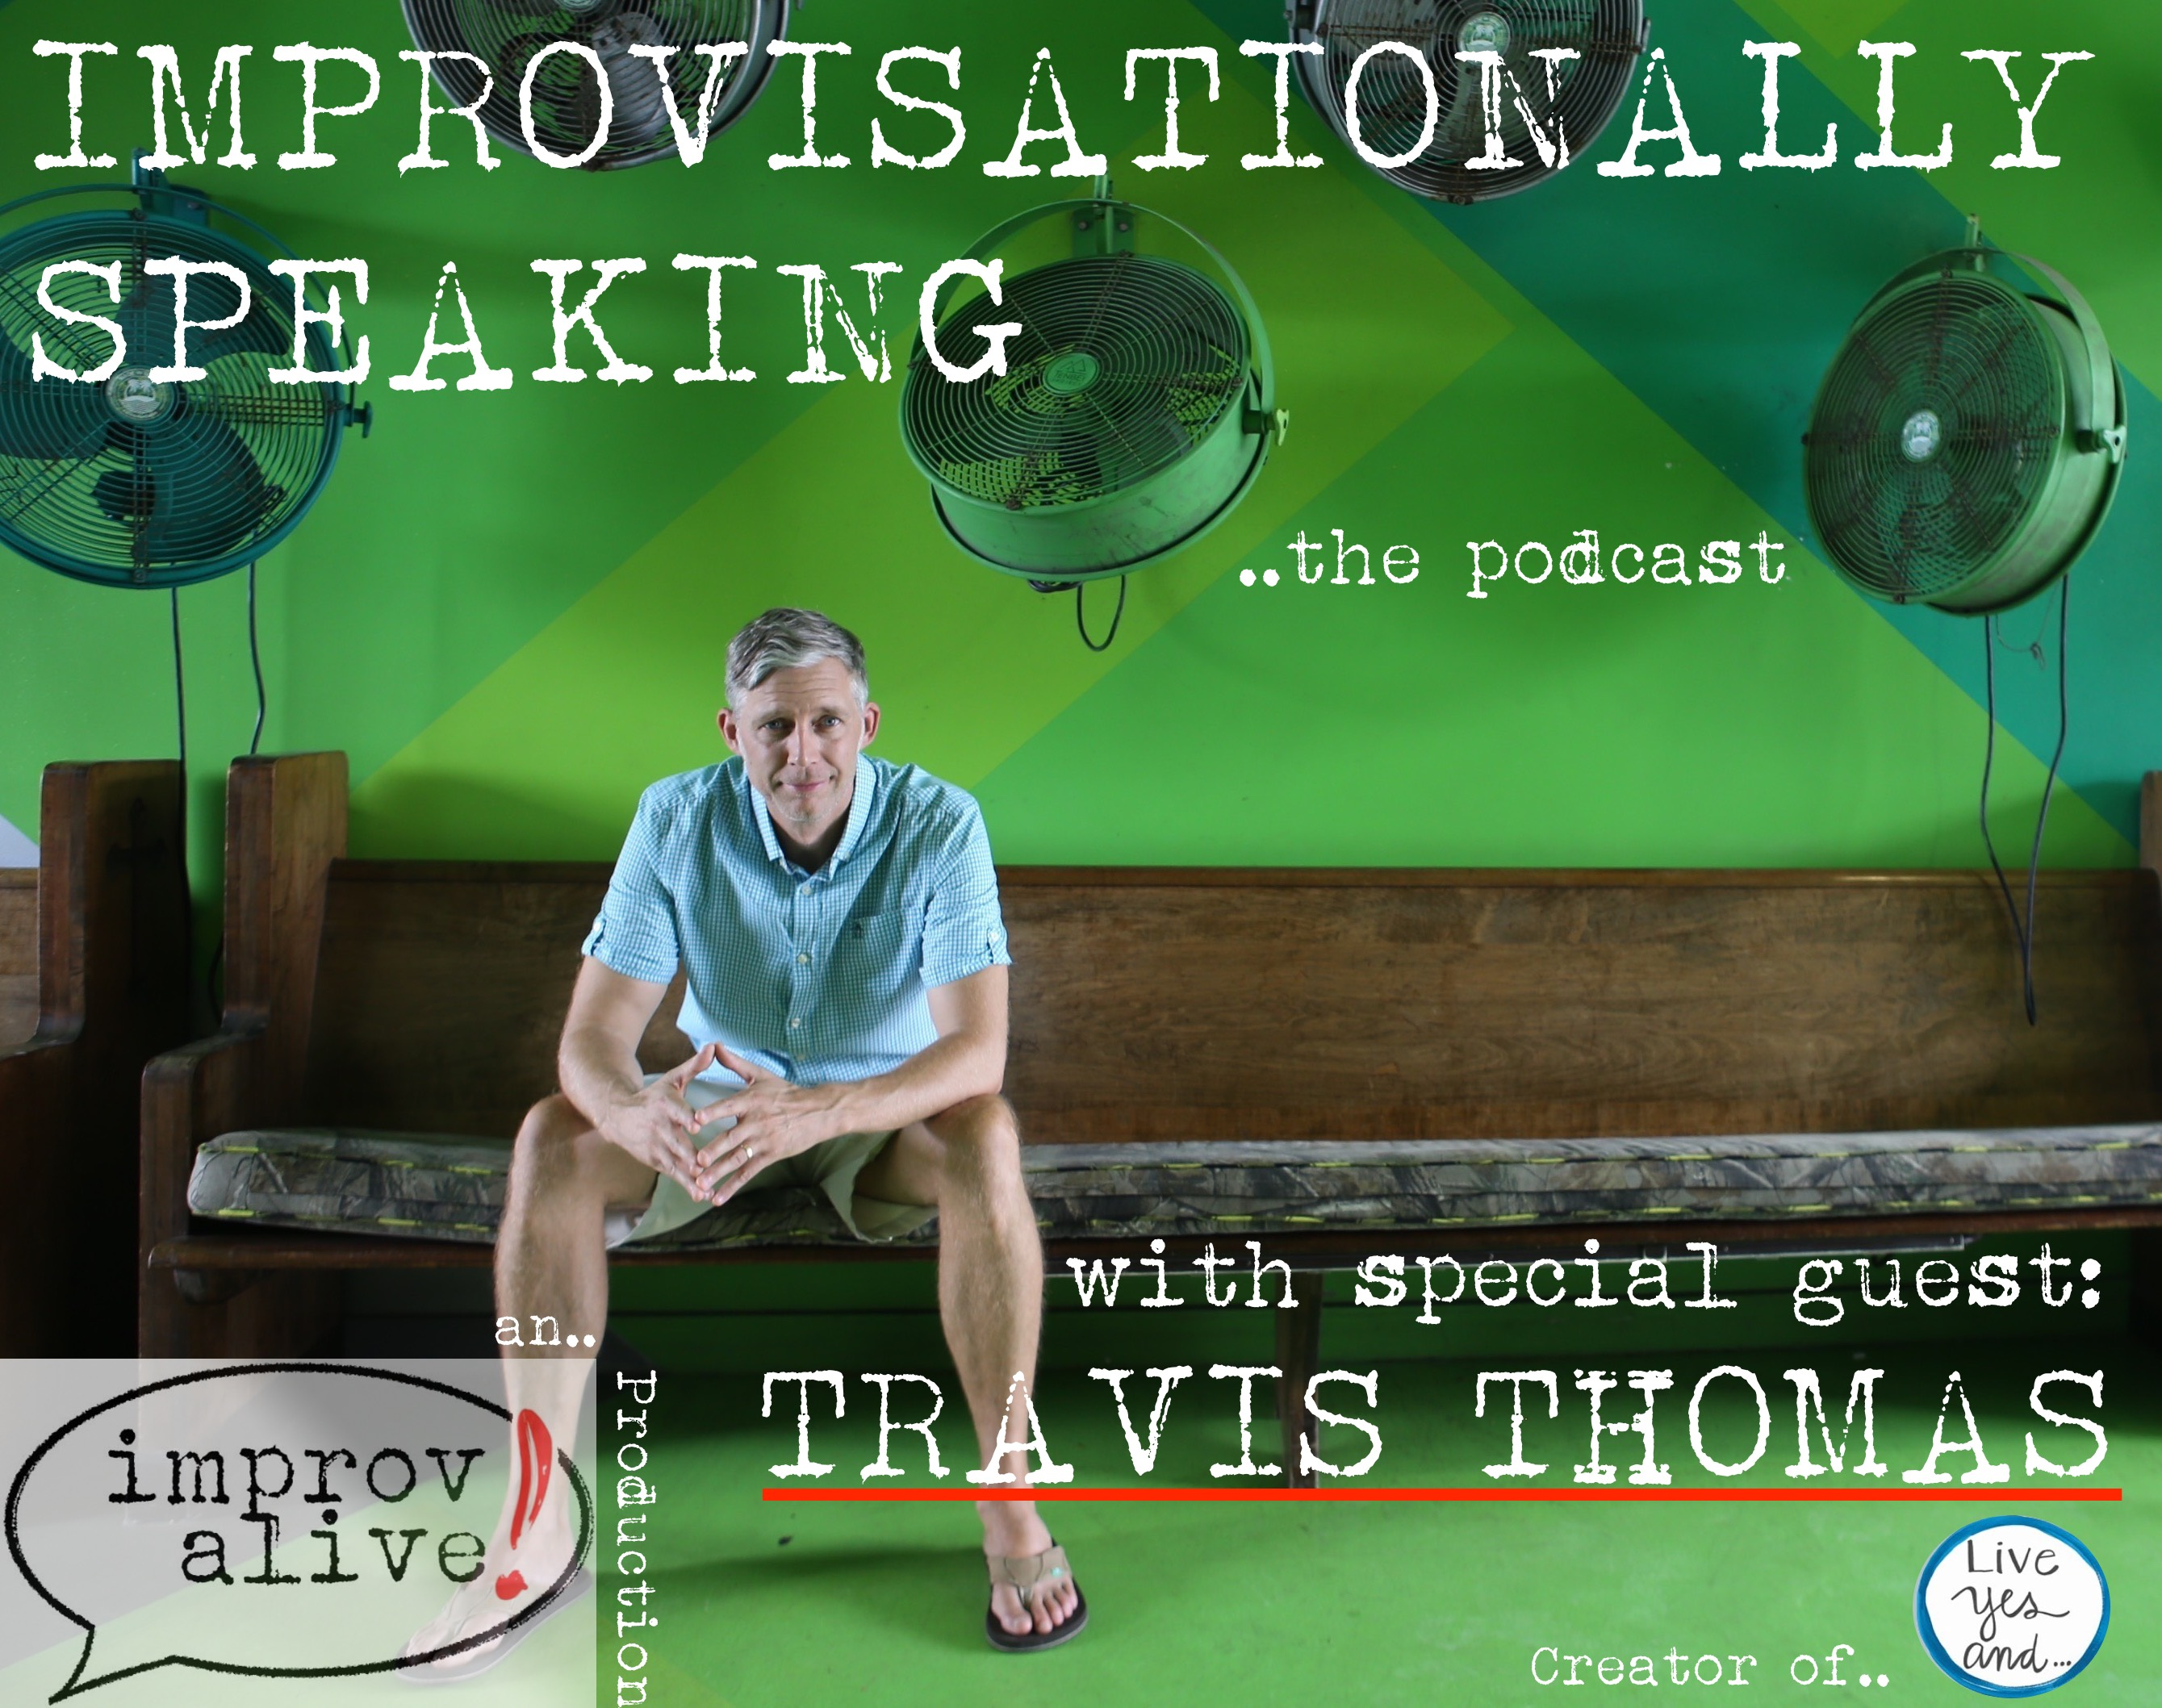 Improvisationally Speaking Episode 8 with Creator of Live Yes And, Travis Thomas